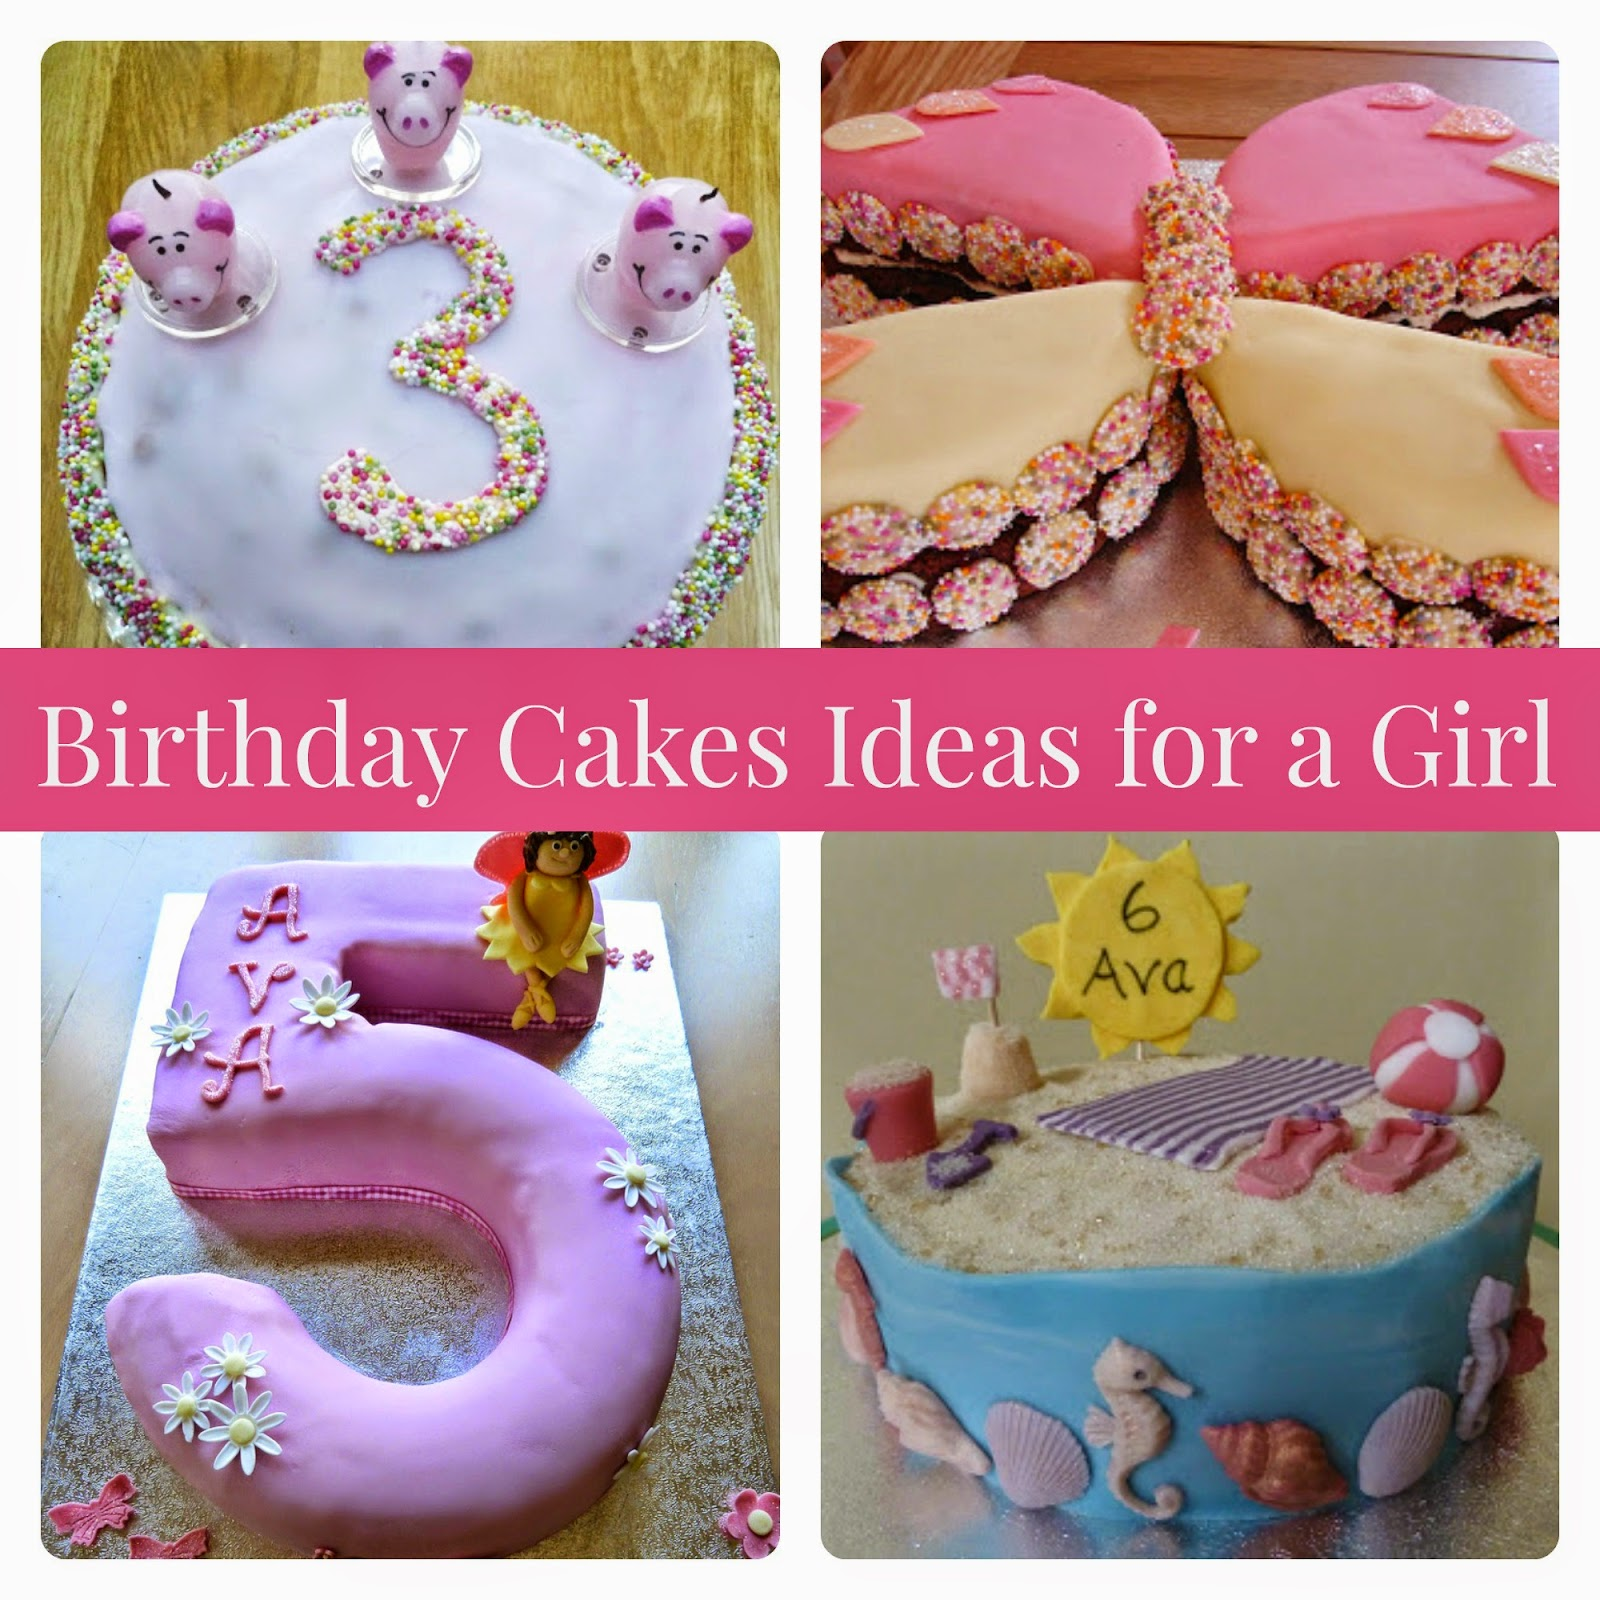 Looking for Birthday Cake Inspiration Garden Tea Cakes and Me